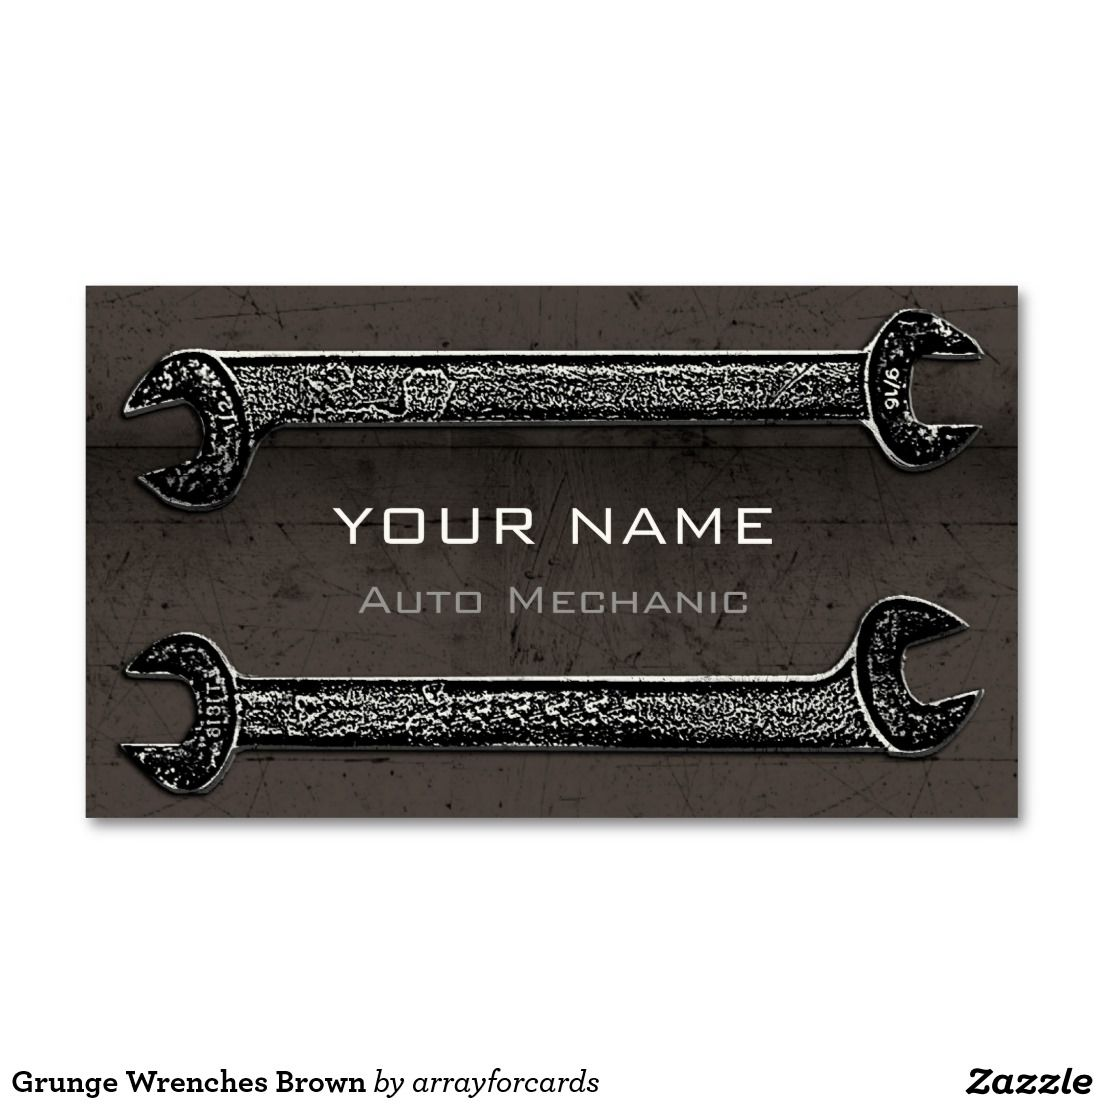 Grunge wrenches brown business card grunge wrenches is a for Mechanic shop business cards